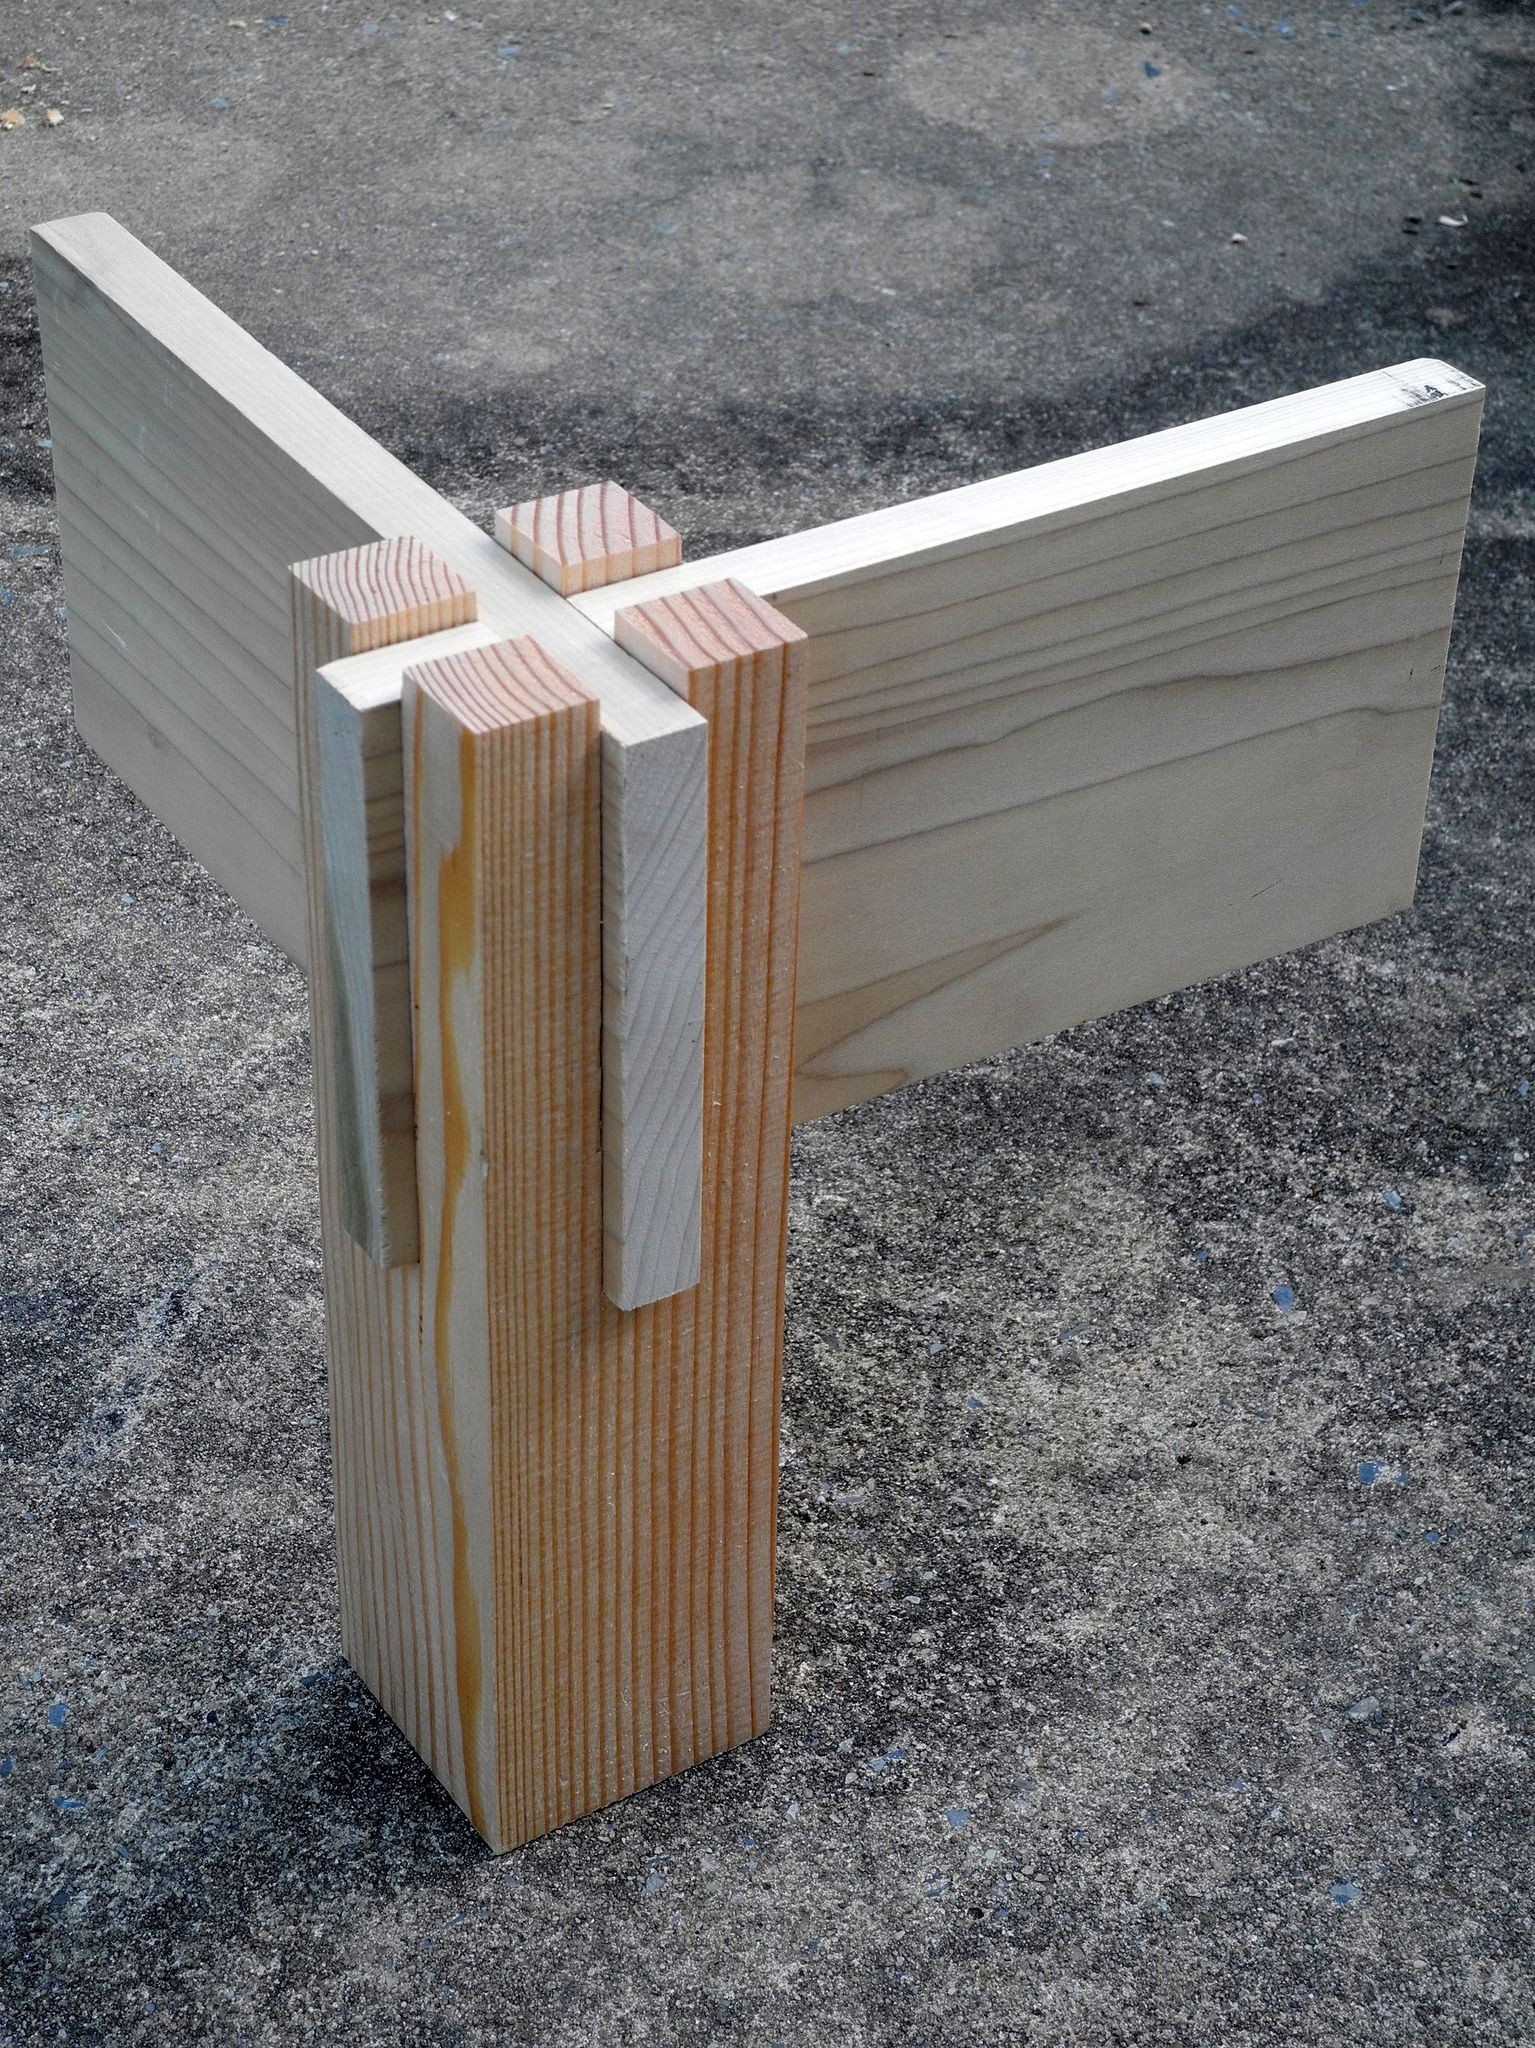 Corner Joint Bedframe In 2019 Wood Joinery Woodworking